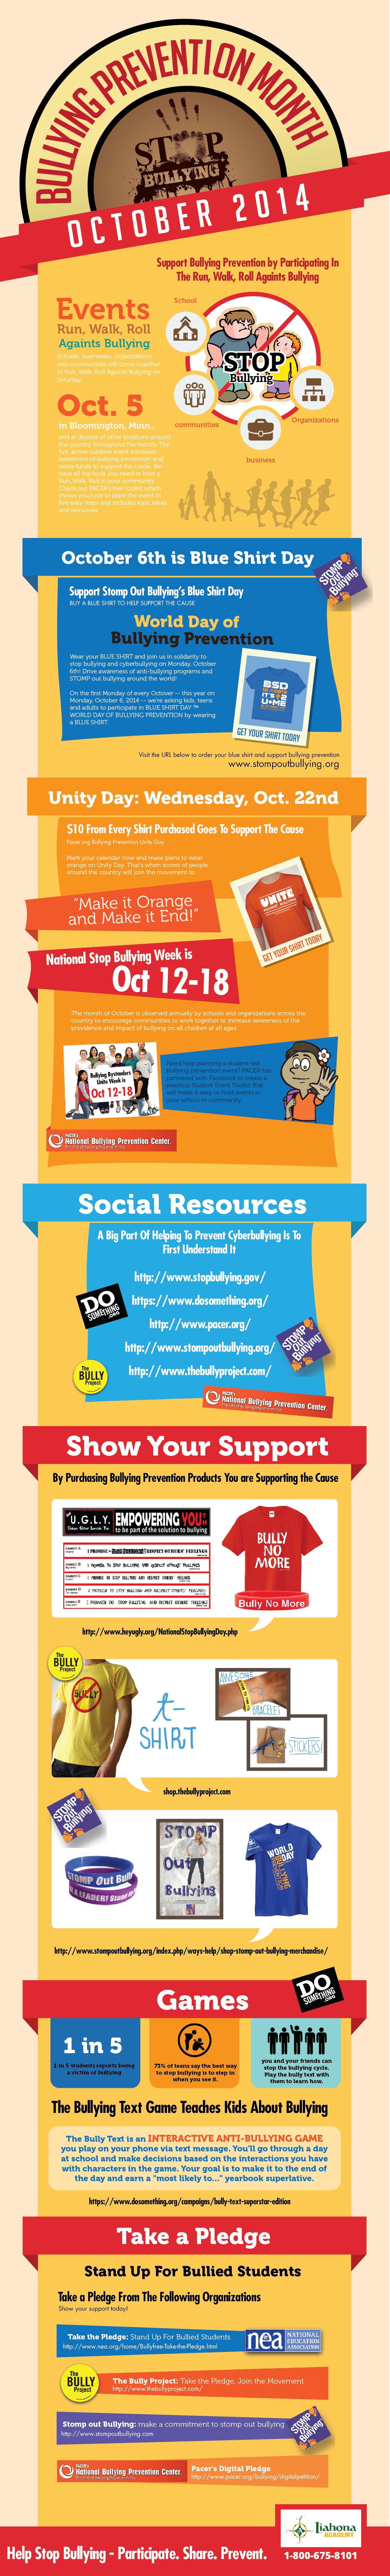 October is Bullying Prevention Month 2014 - Infographic